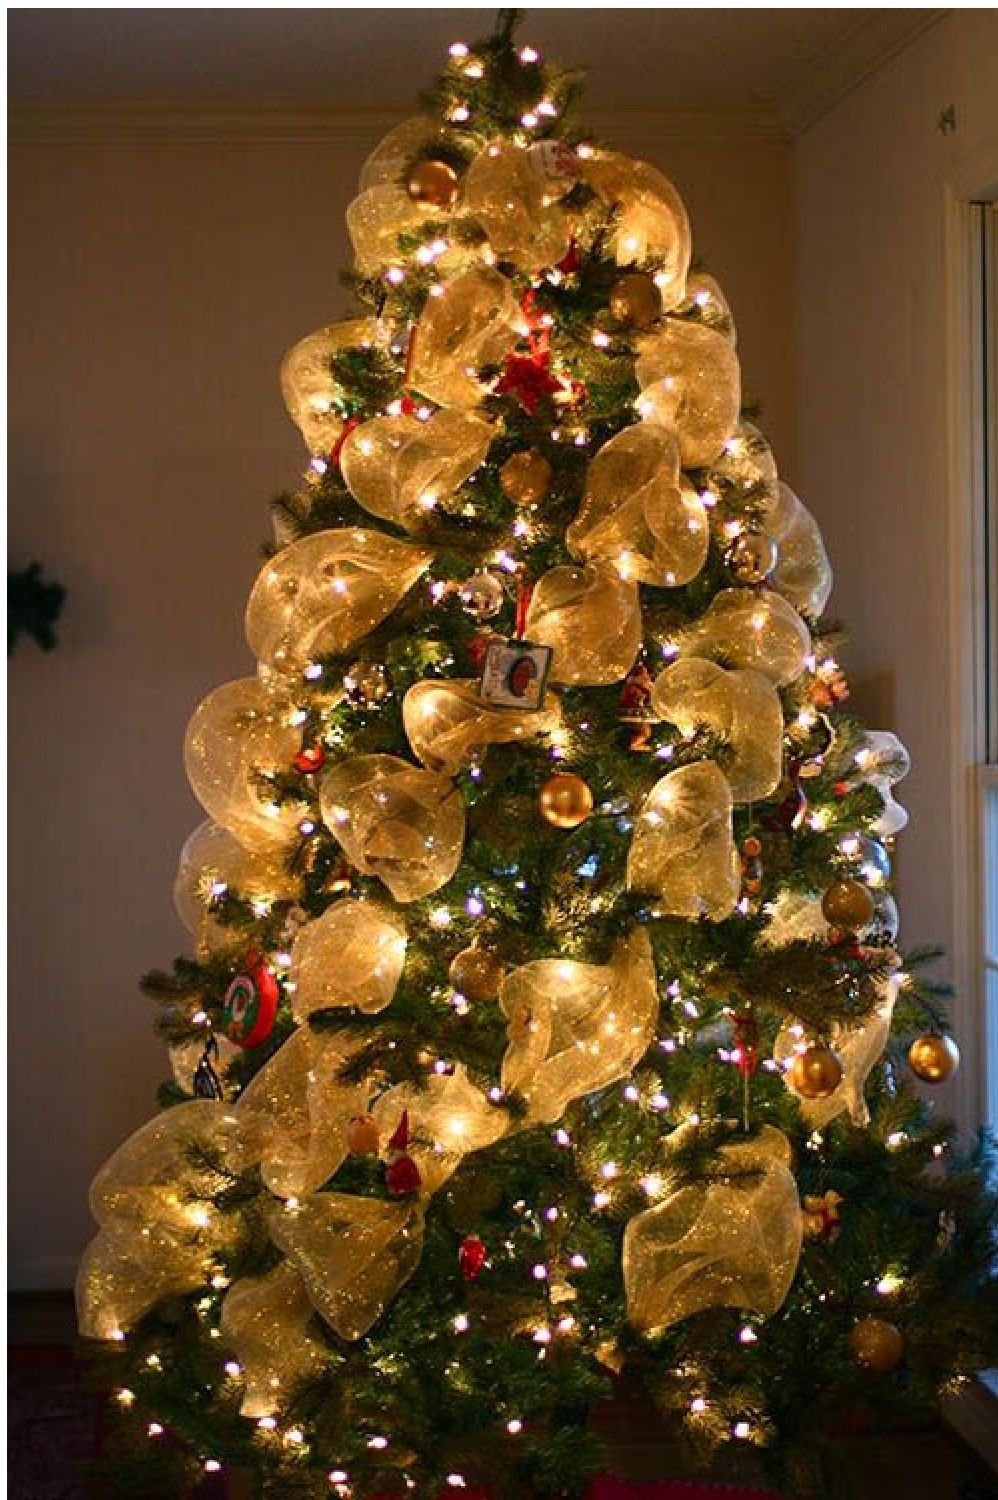 Christmas tree decorations 2014 with mesh - Luxuriant Christmas Tree Deco Mesh Deco Mesh Christmas Tree 2014 Deco Mesh Christmas Tree Learn To Make These Deco Mesh Christmas Tree 2014